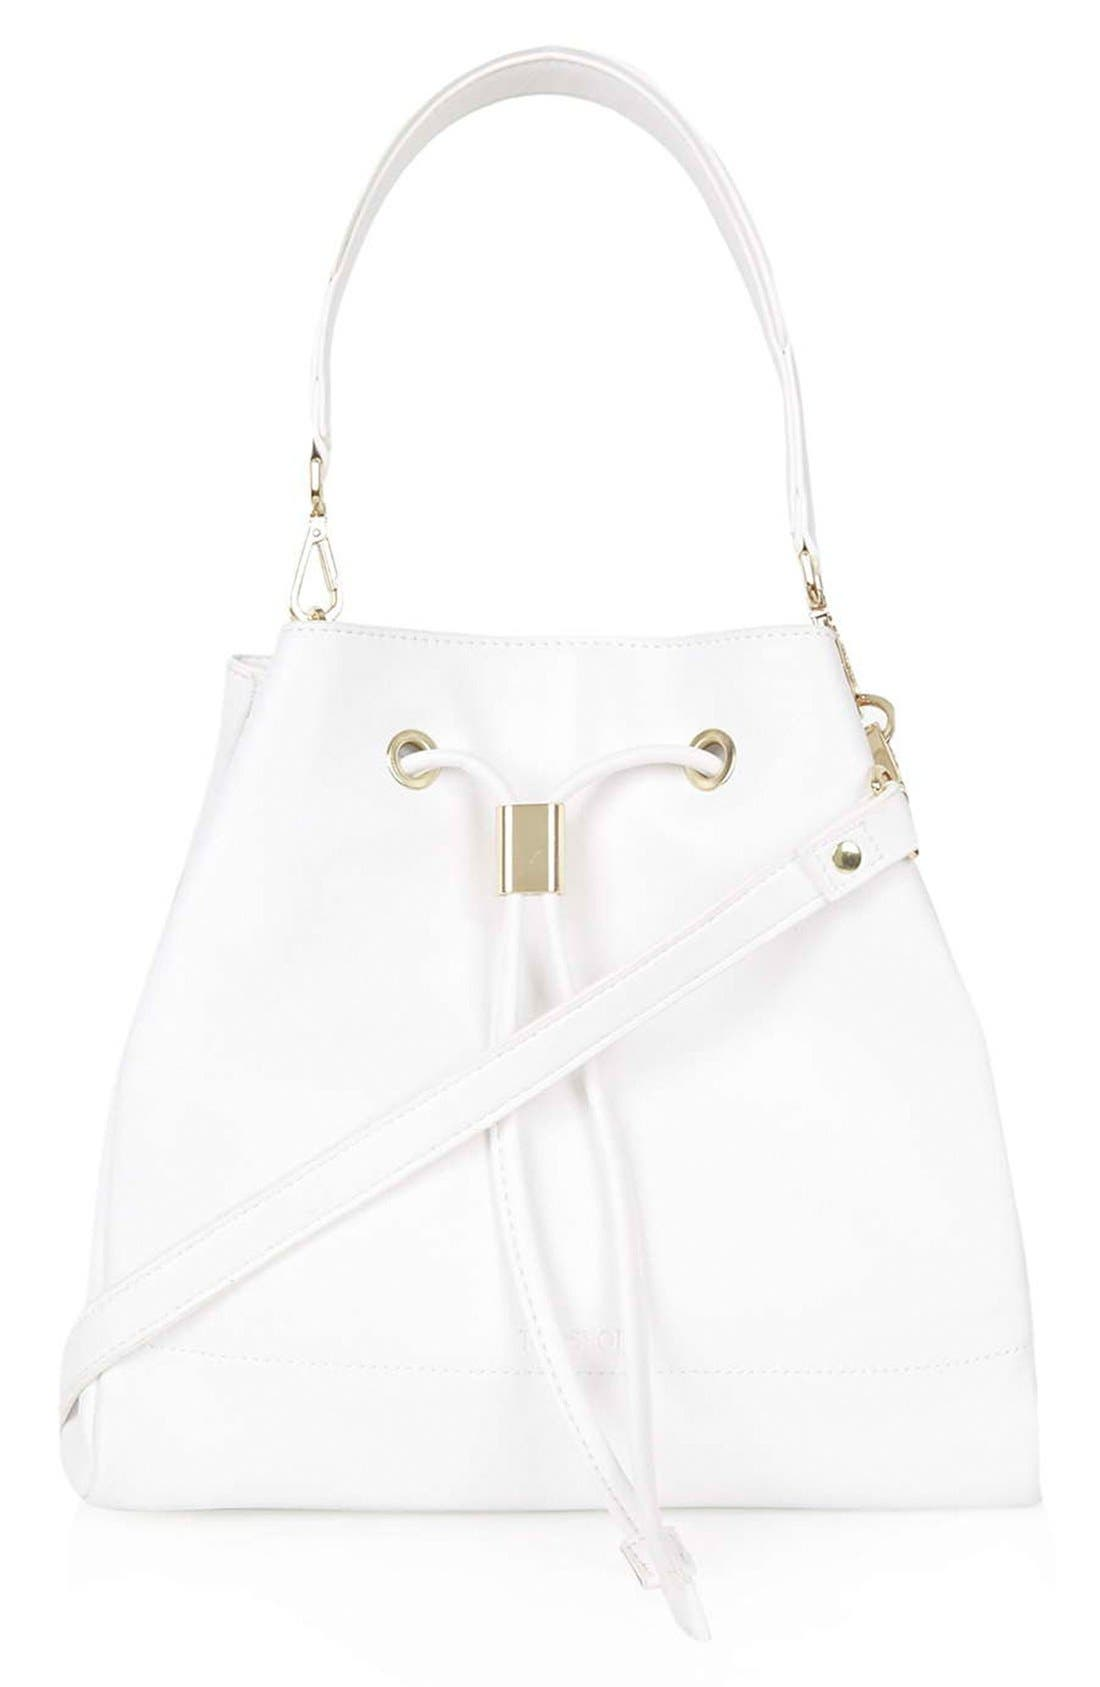 'Westly' Bucket Bag,                             Main thumbnail 1, color,                             100